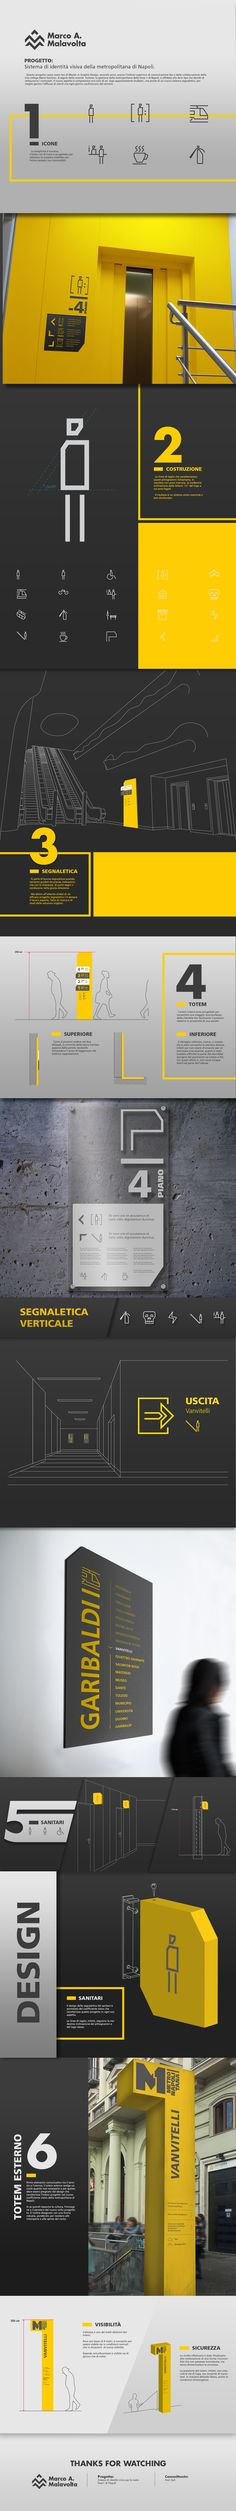 Visual Identity System for the Naples Metro. Master Thesis in Graphic Design (ILAS).